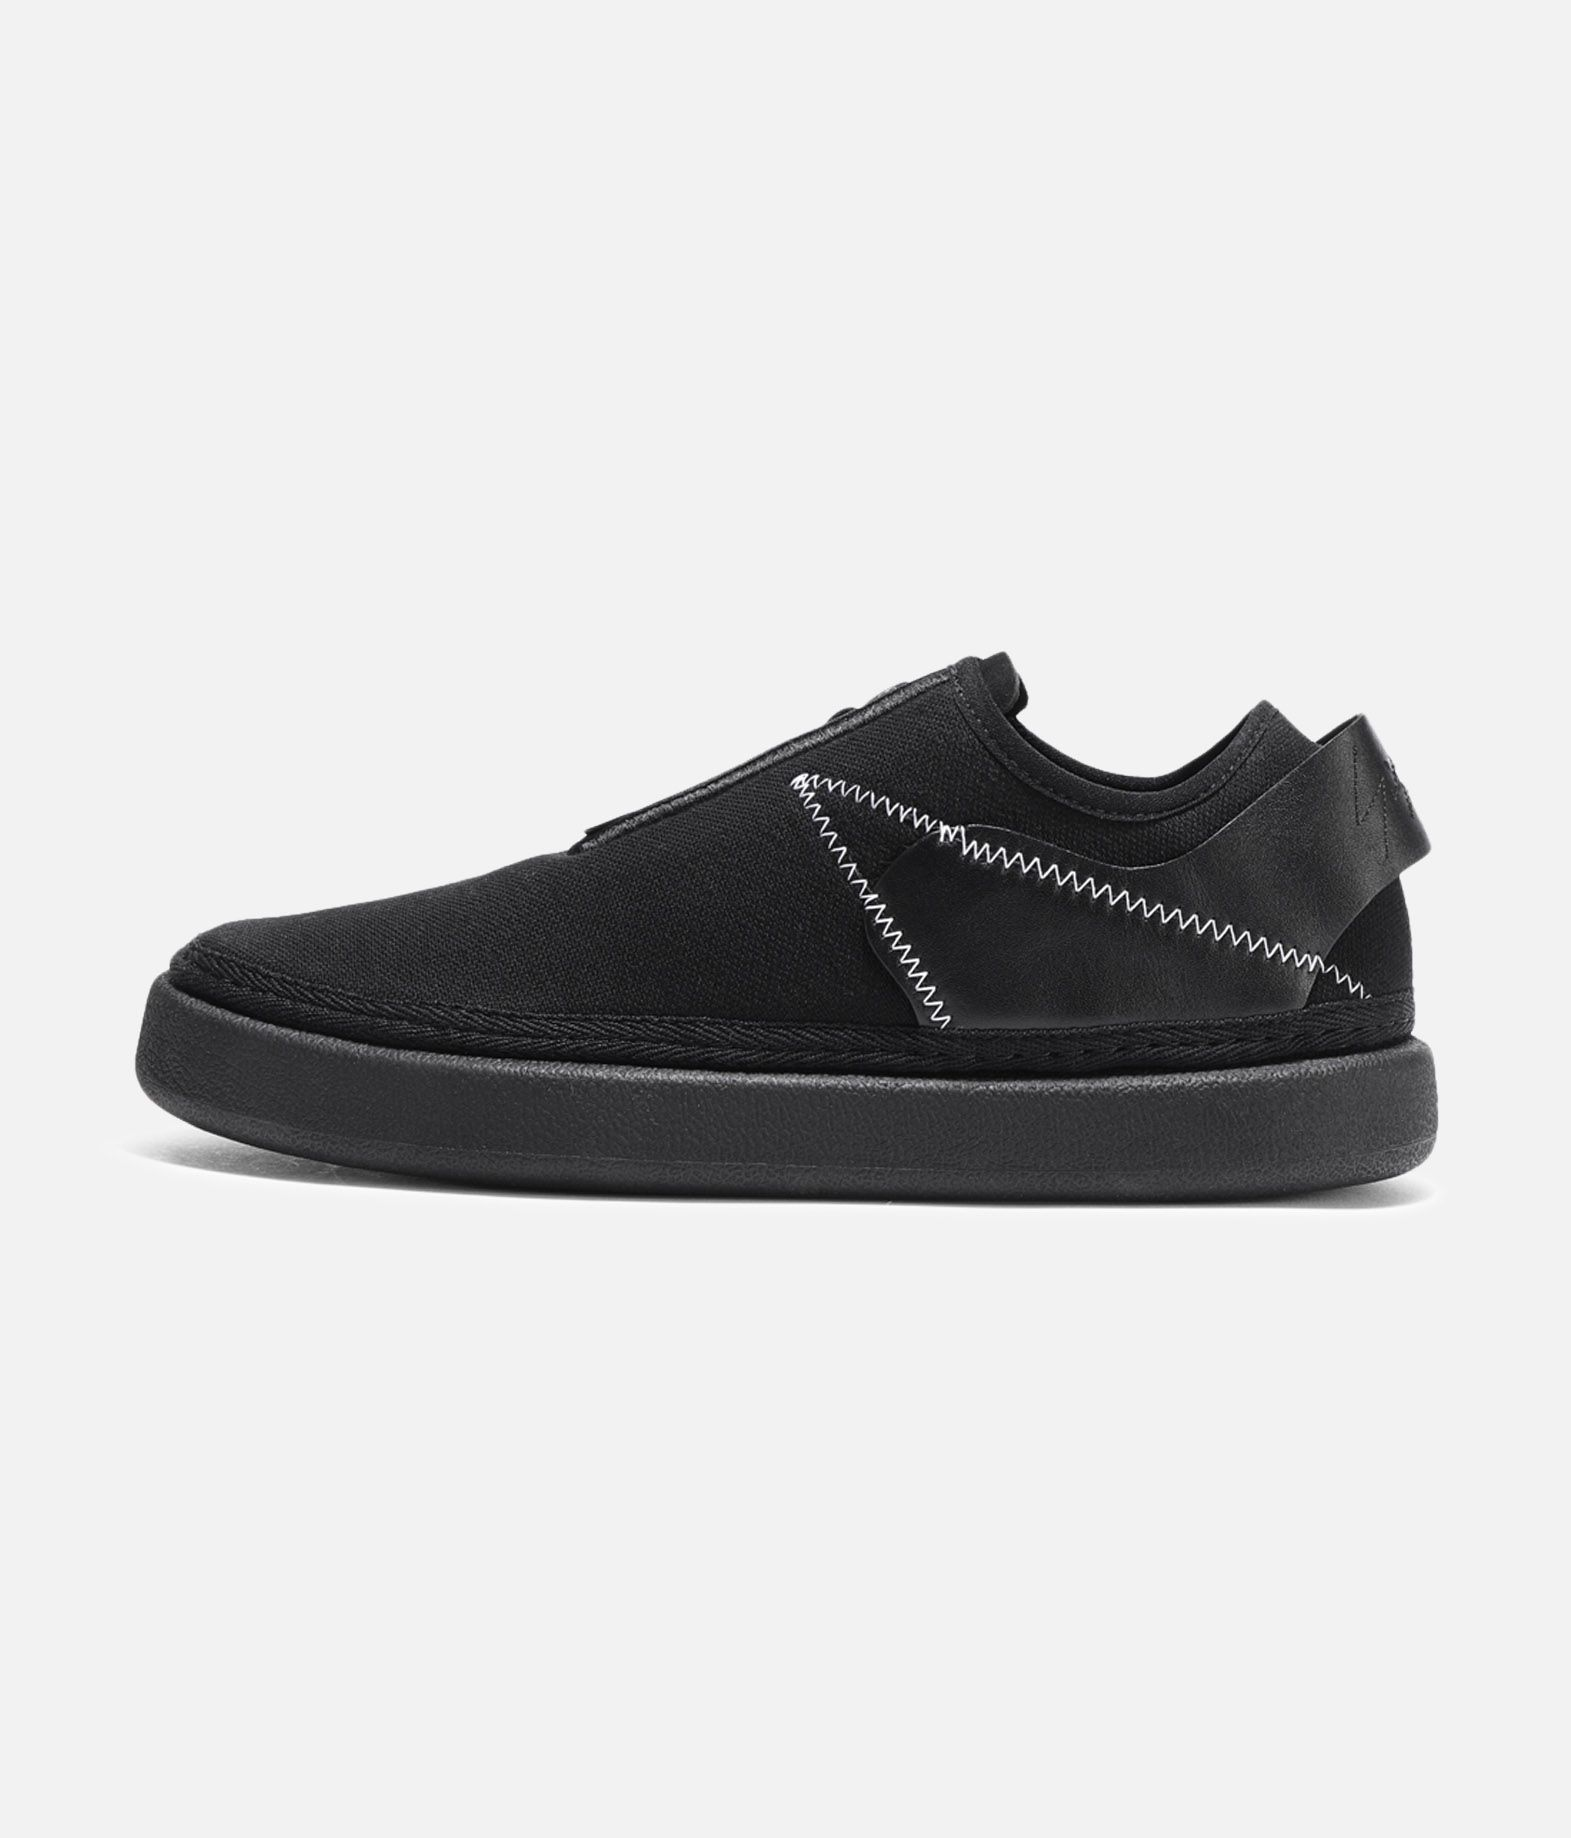 Y-3 Y-3 Comfort Zip High-top sneakers Woman f